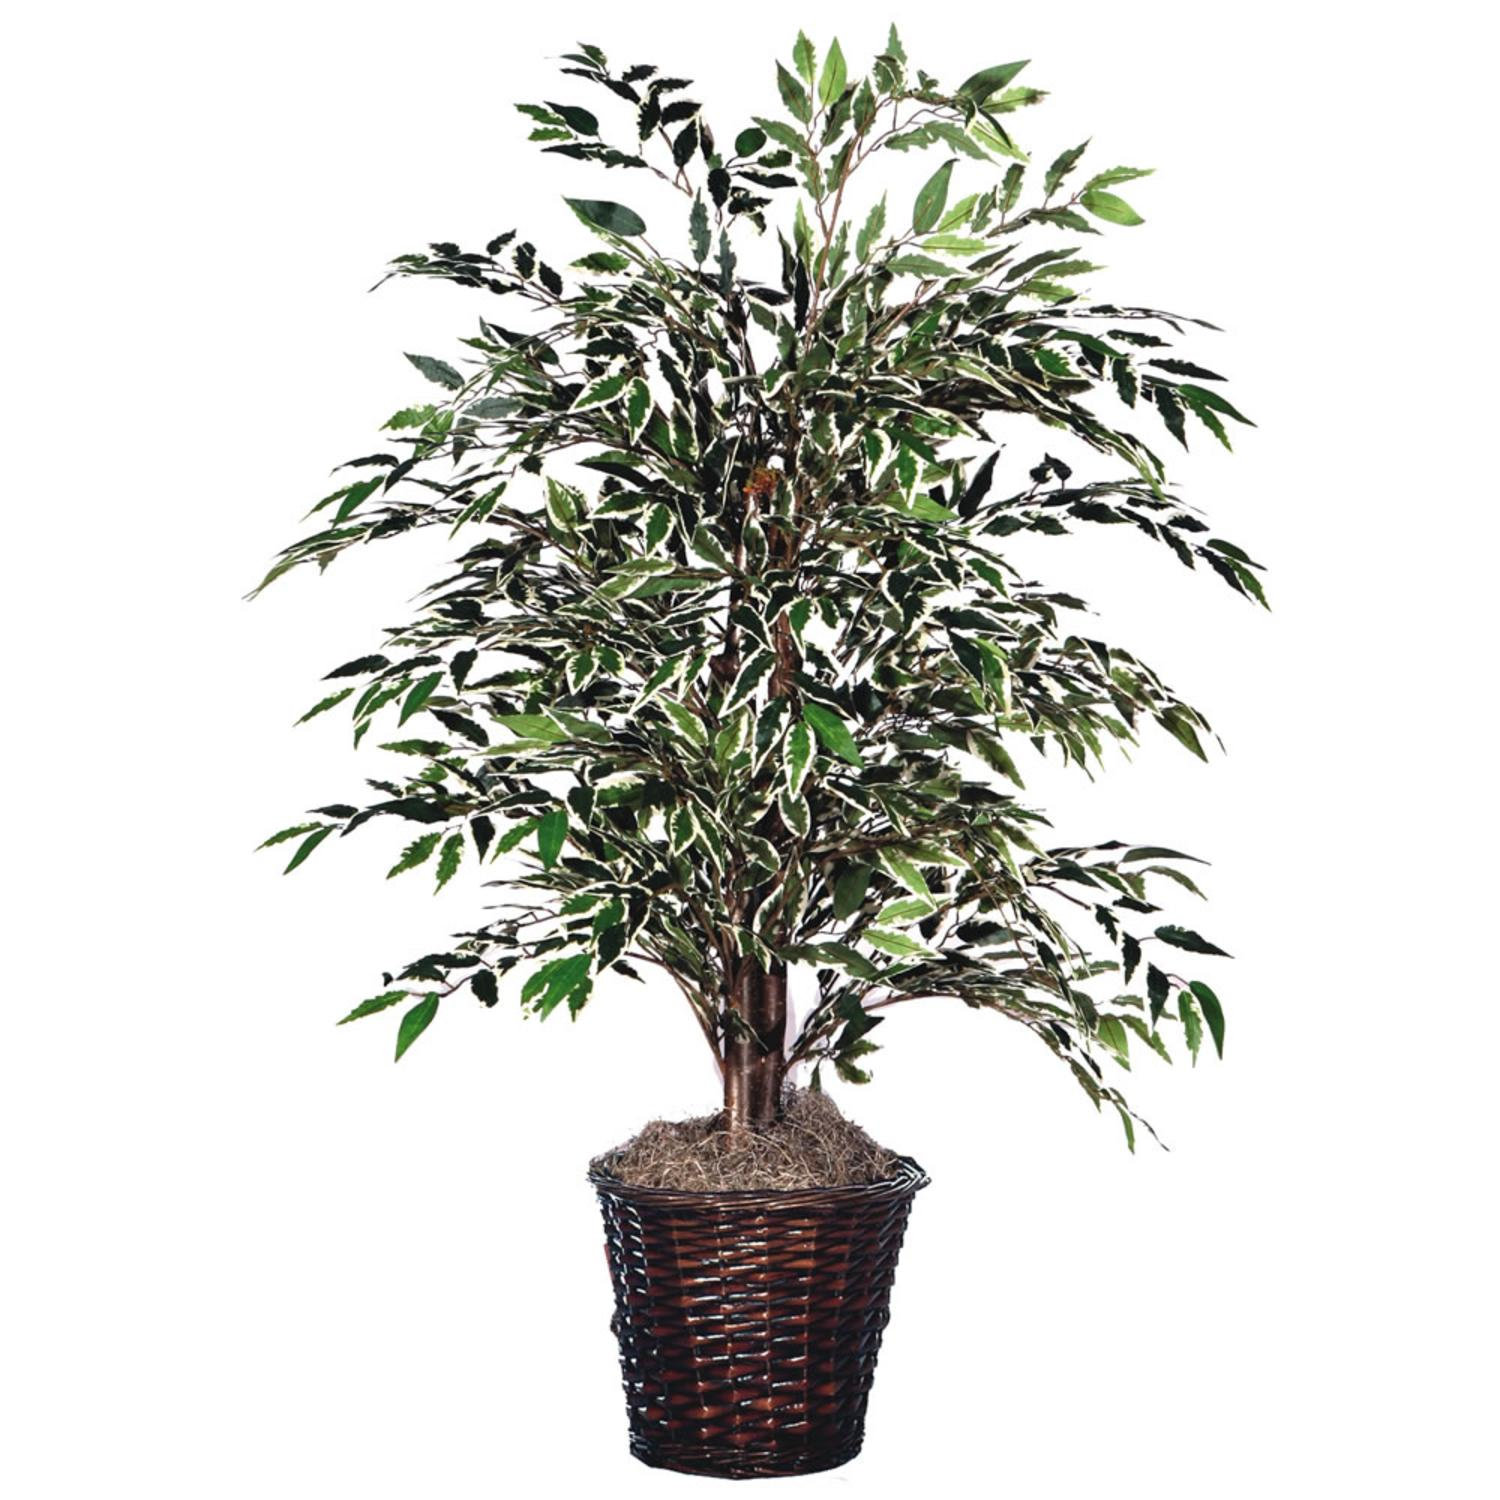 4' Potted Artificial Variegated Smilax Bush in Brown Pot